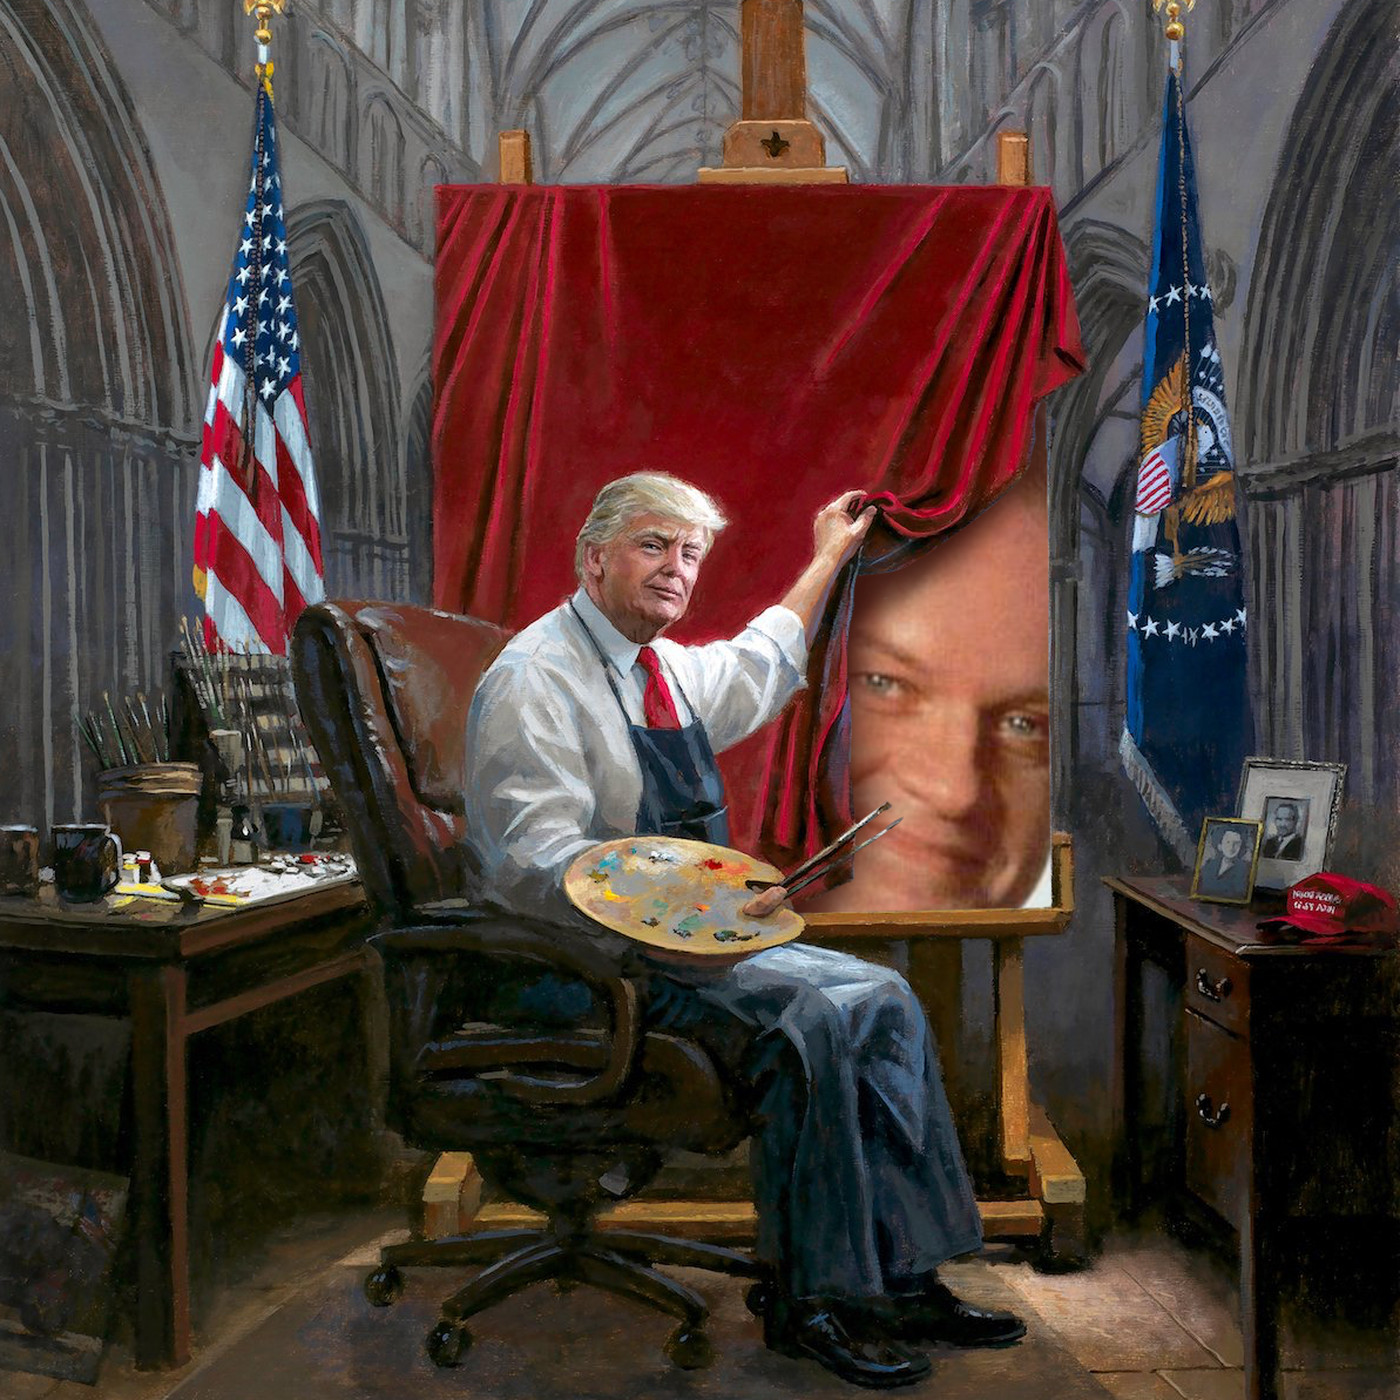 This Painting Of Trump Has Become The Ultimate Meme Fodder Funny Or Die